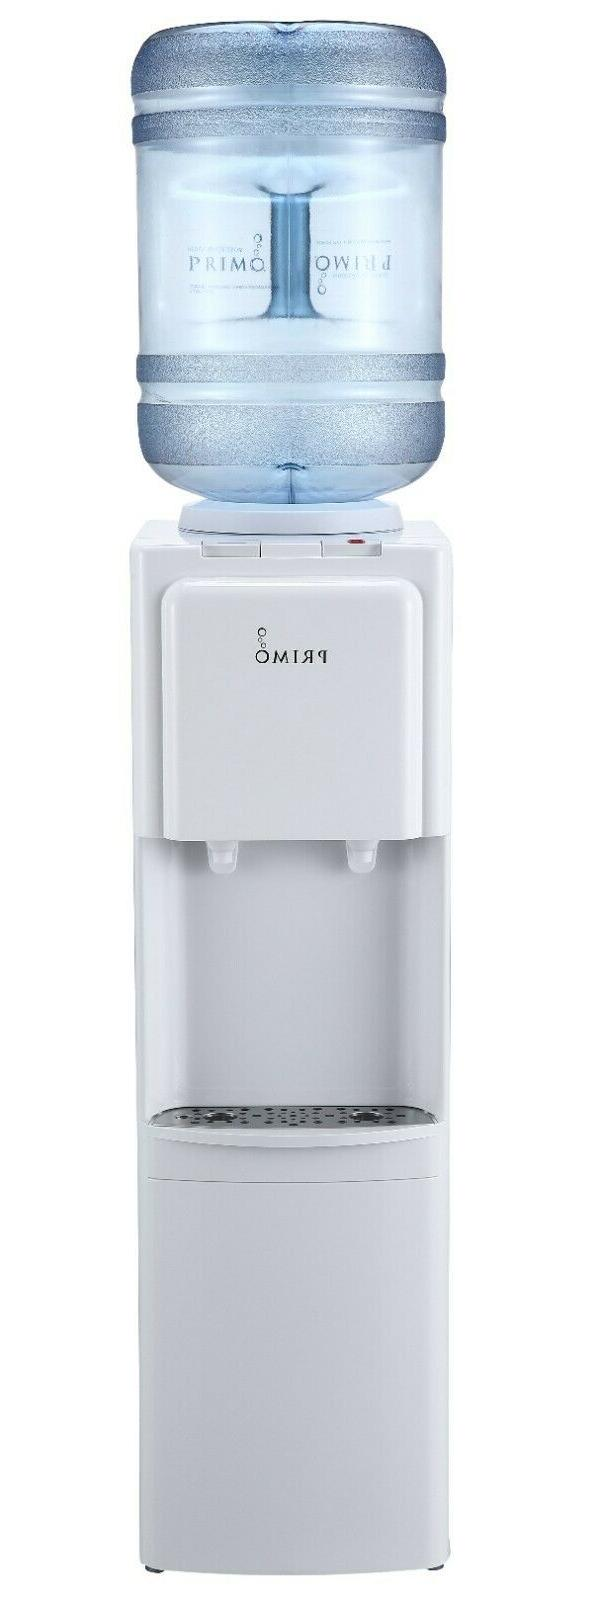 Primo Top Loading Hot/Cold Water cooler Dispenser 3,5 Gallon